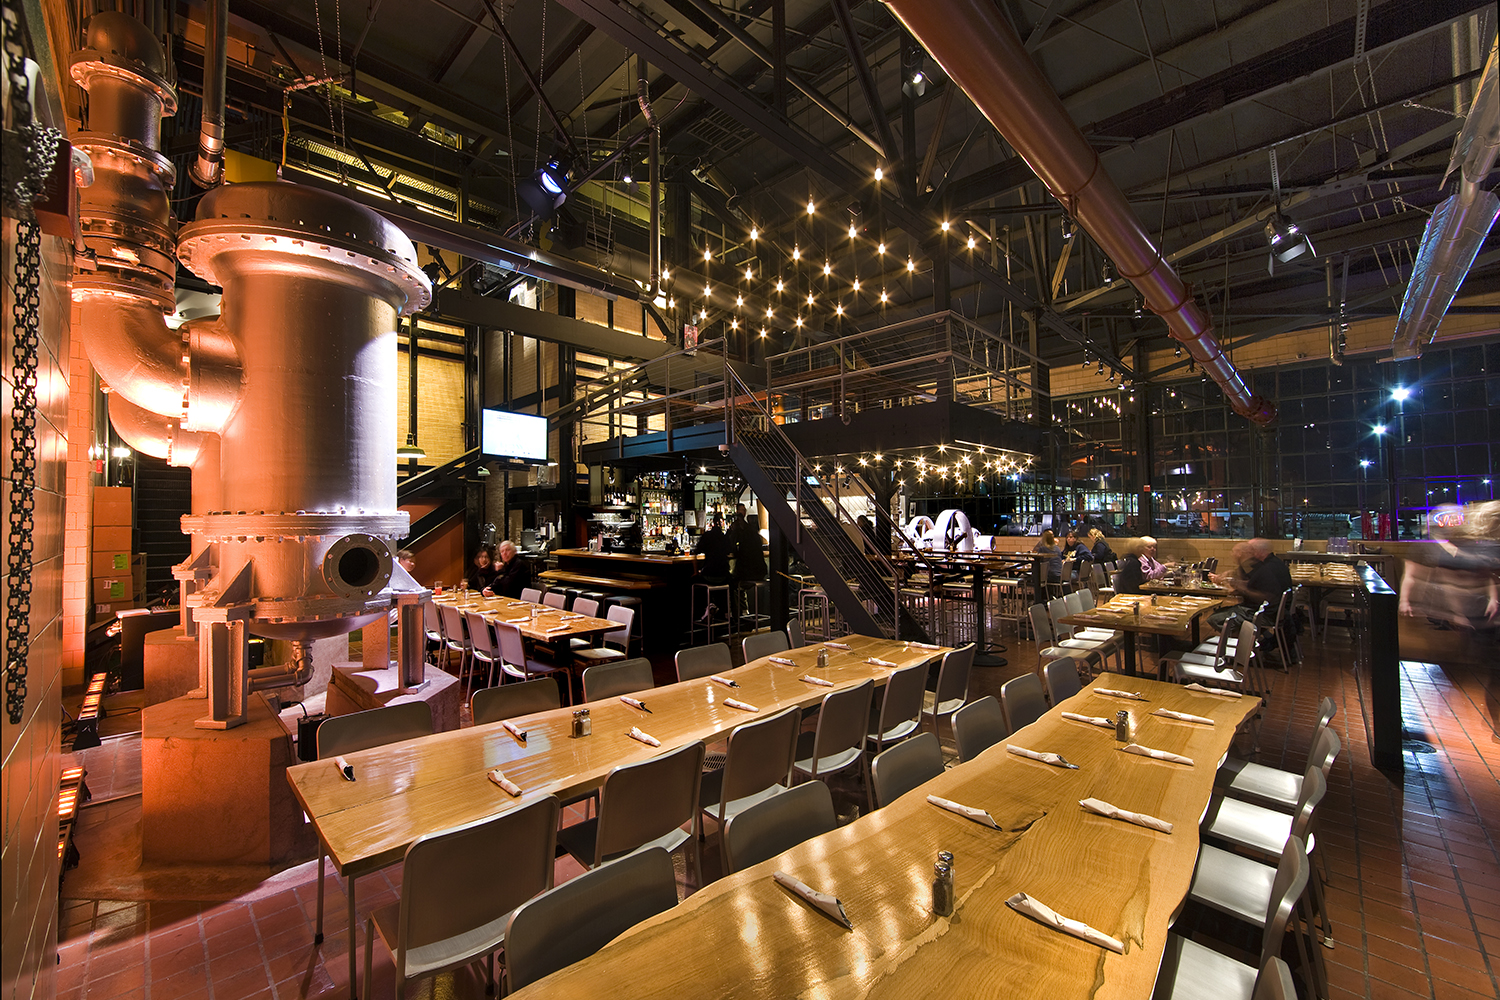 08_Projects_The Boiler House Restaurant.jpg